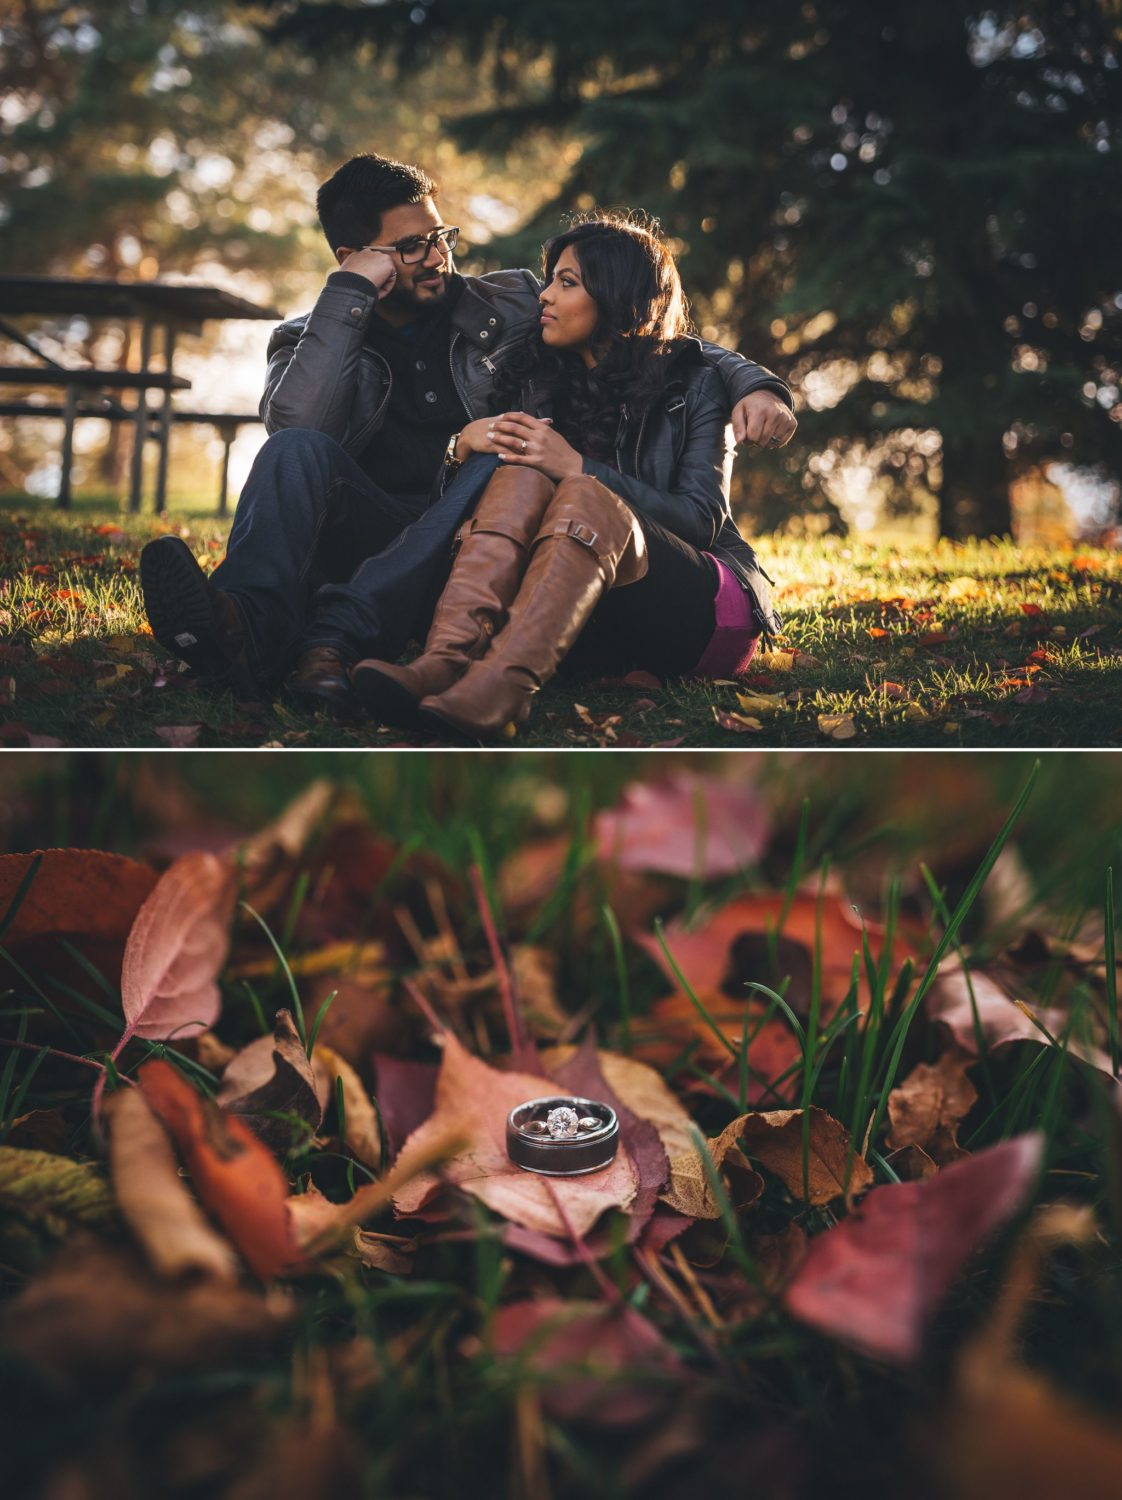 edmonton-wedding-photographers-box-cube-photograph-zubair-amara-engagement 8